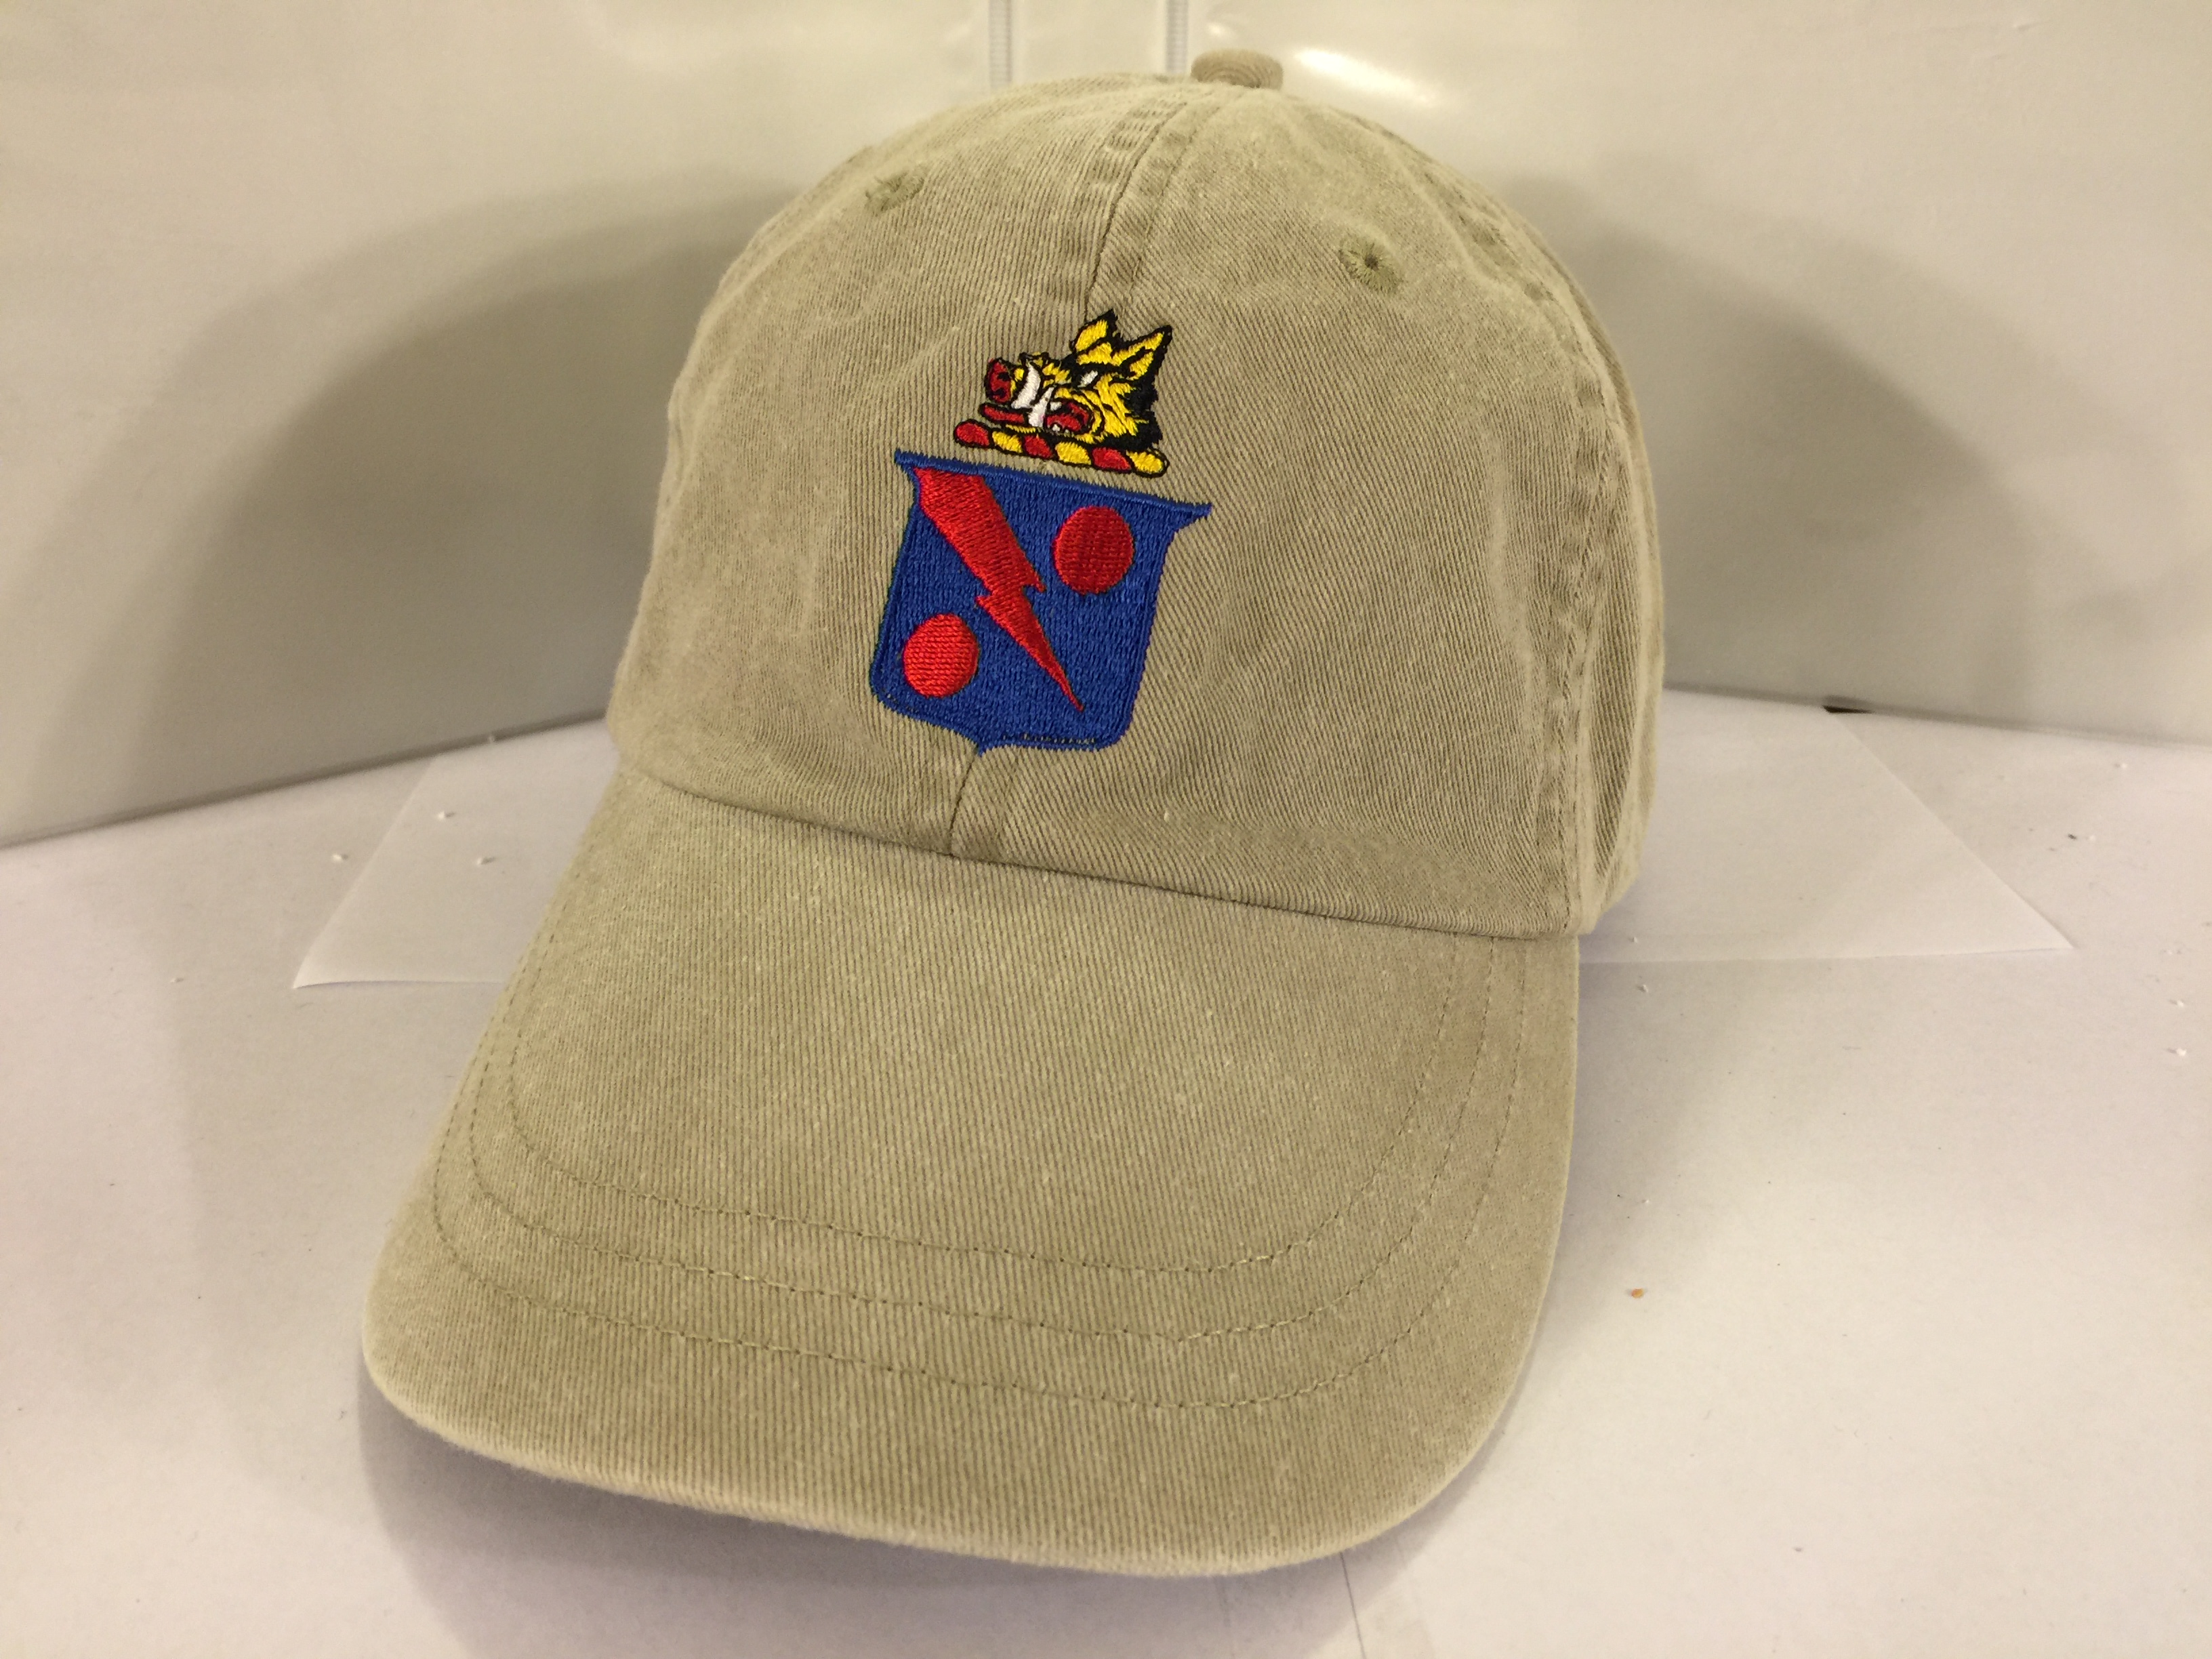 VF-11 'Gordon Above Shield' Ballcap (Khaki/Dir. Emb.)